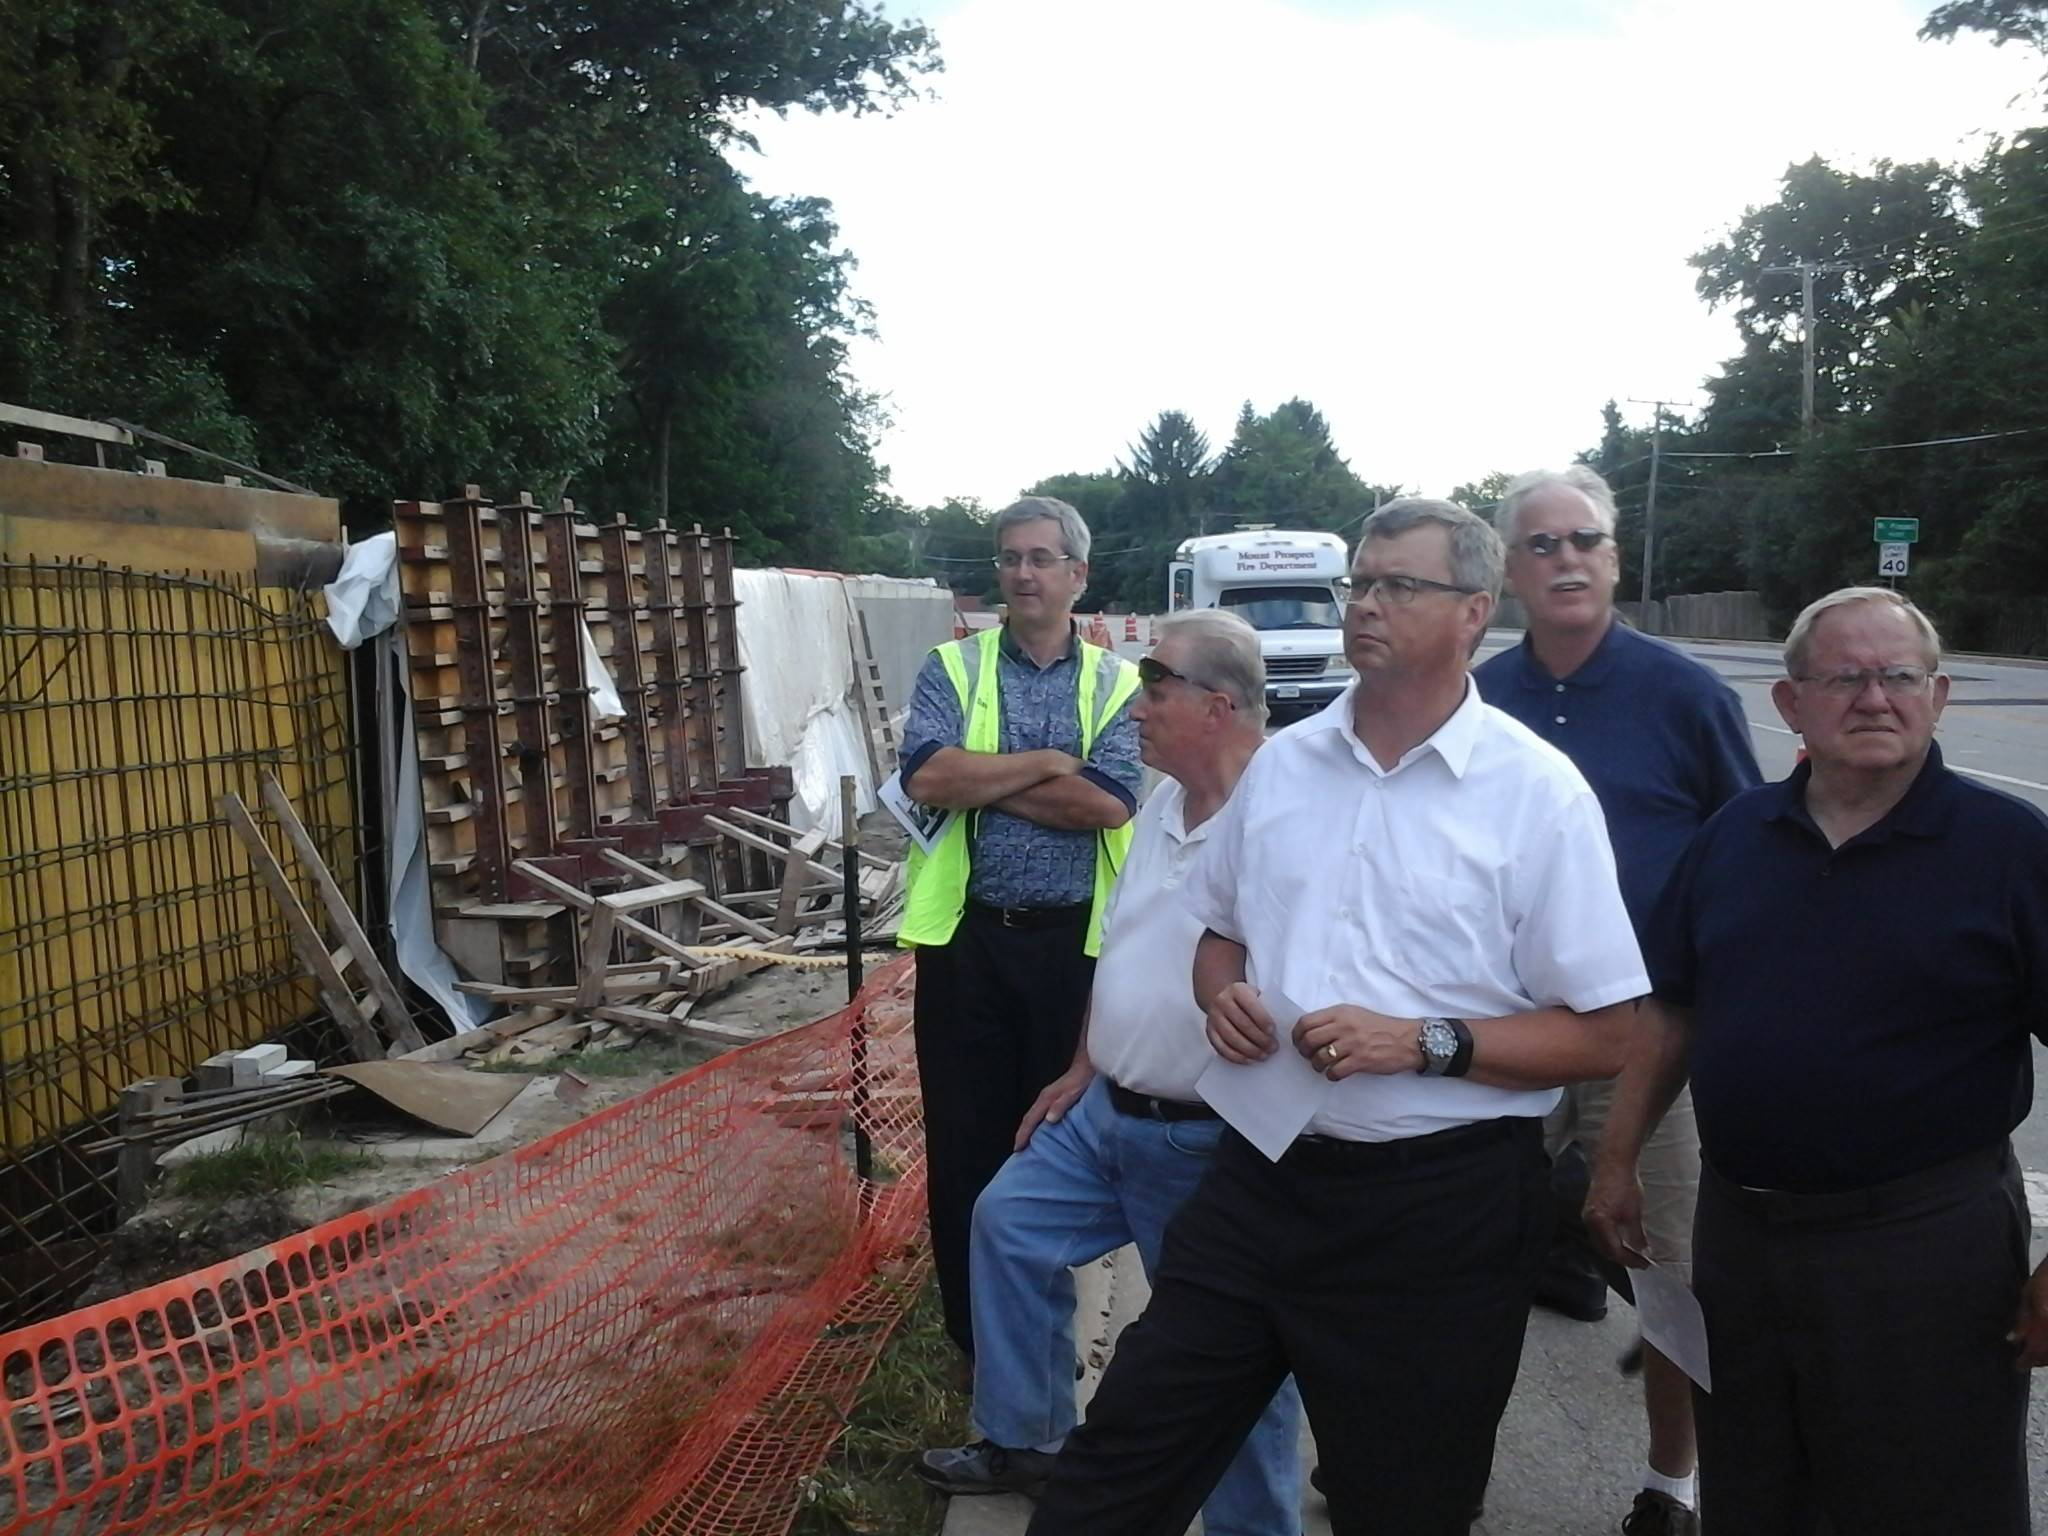 From left, Assistant Village Manager David Strahl, Trustee A. John Korn, Trustee John Matuszak, Trustee Steven Polit and Trustee Richard Rogers view Levee 37 flood prevention work in Prospect Heights.